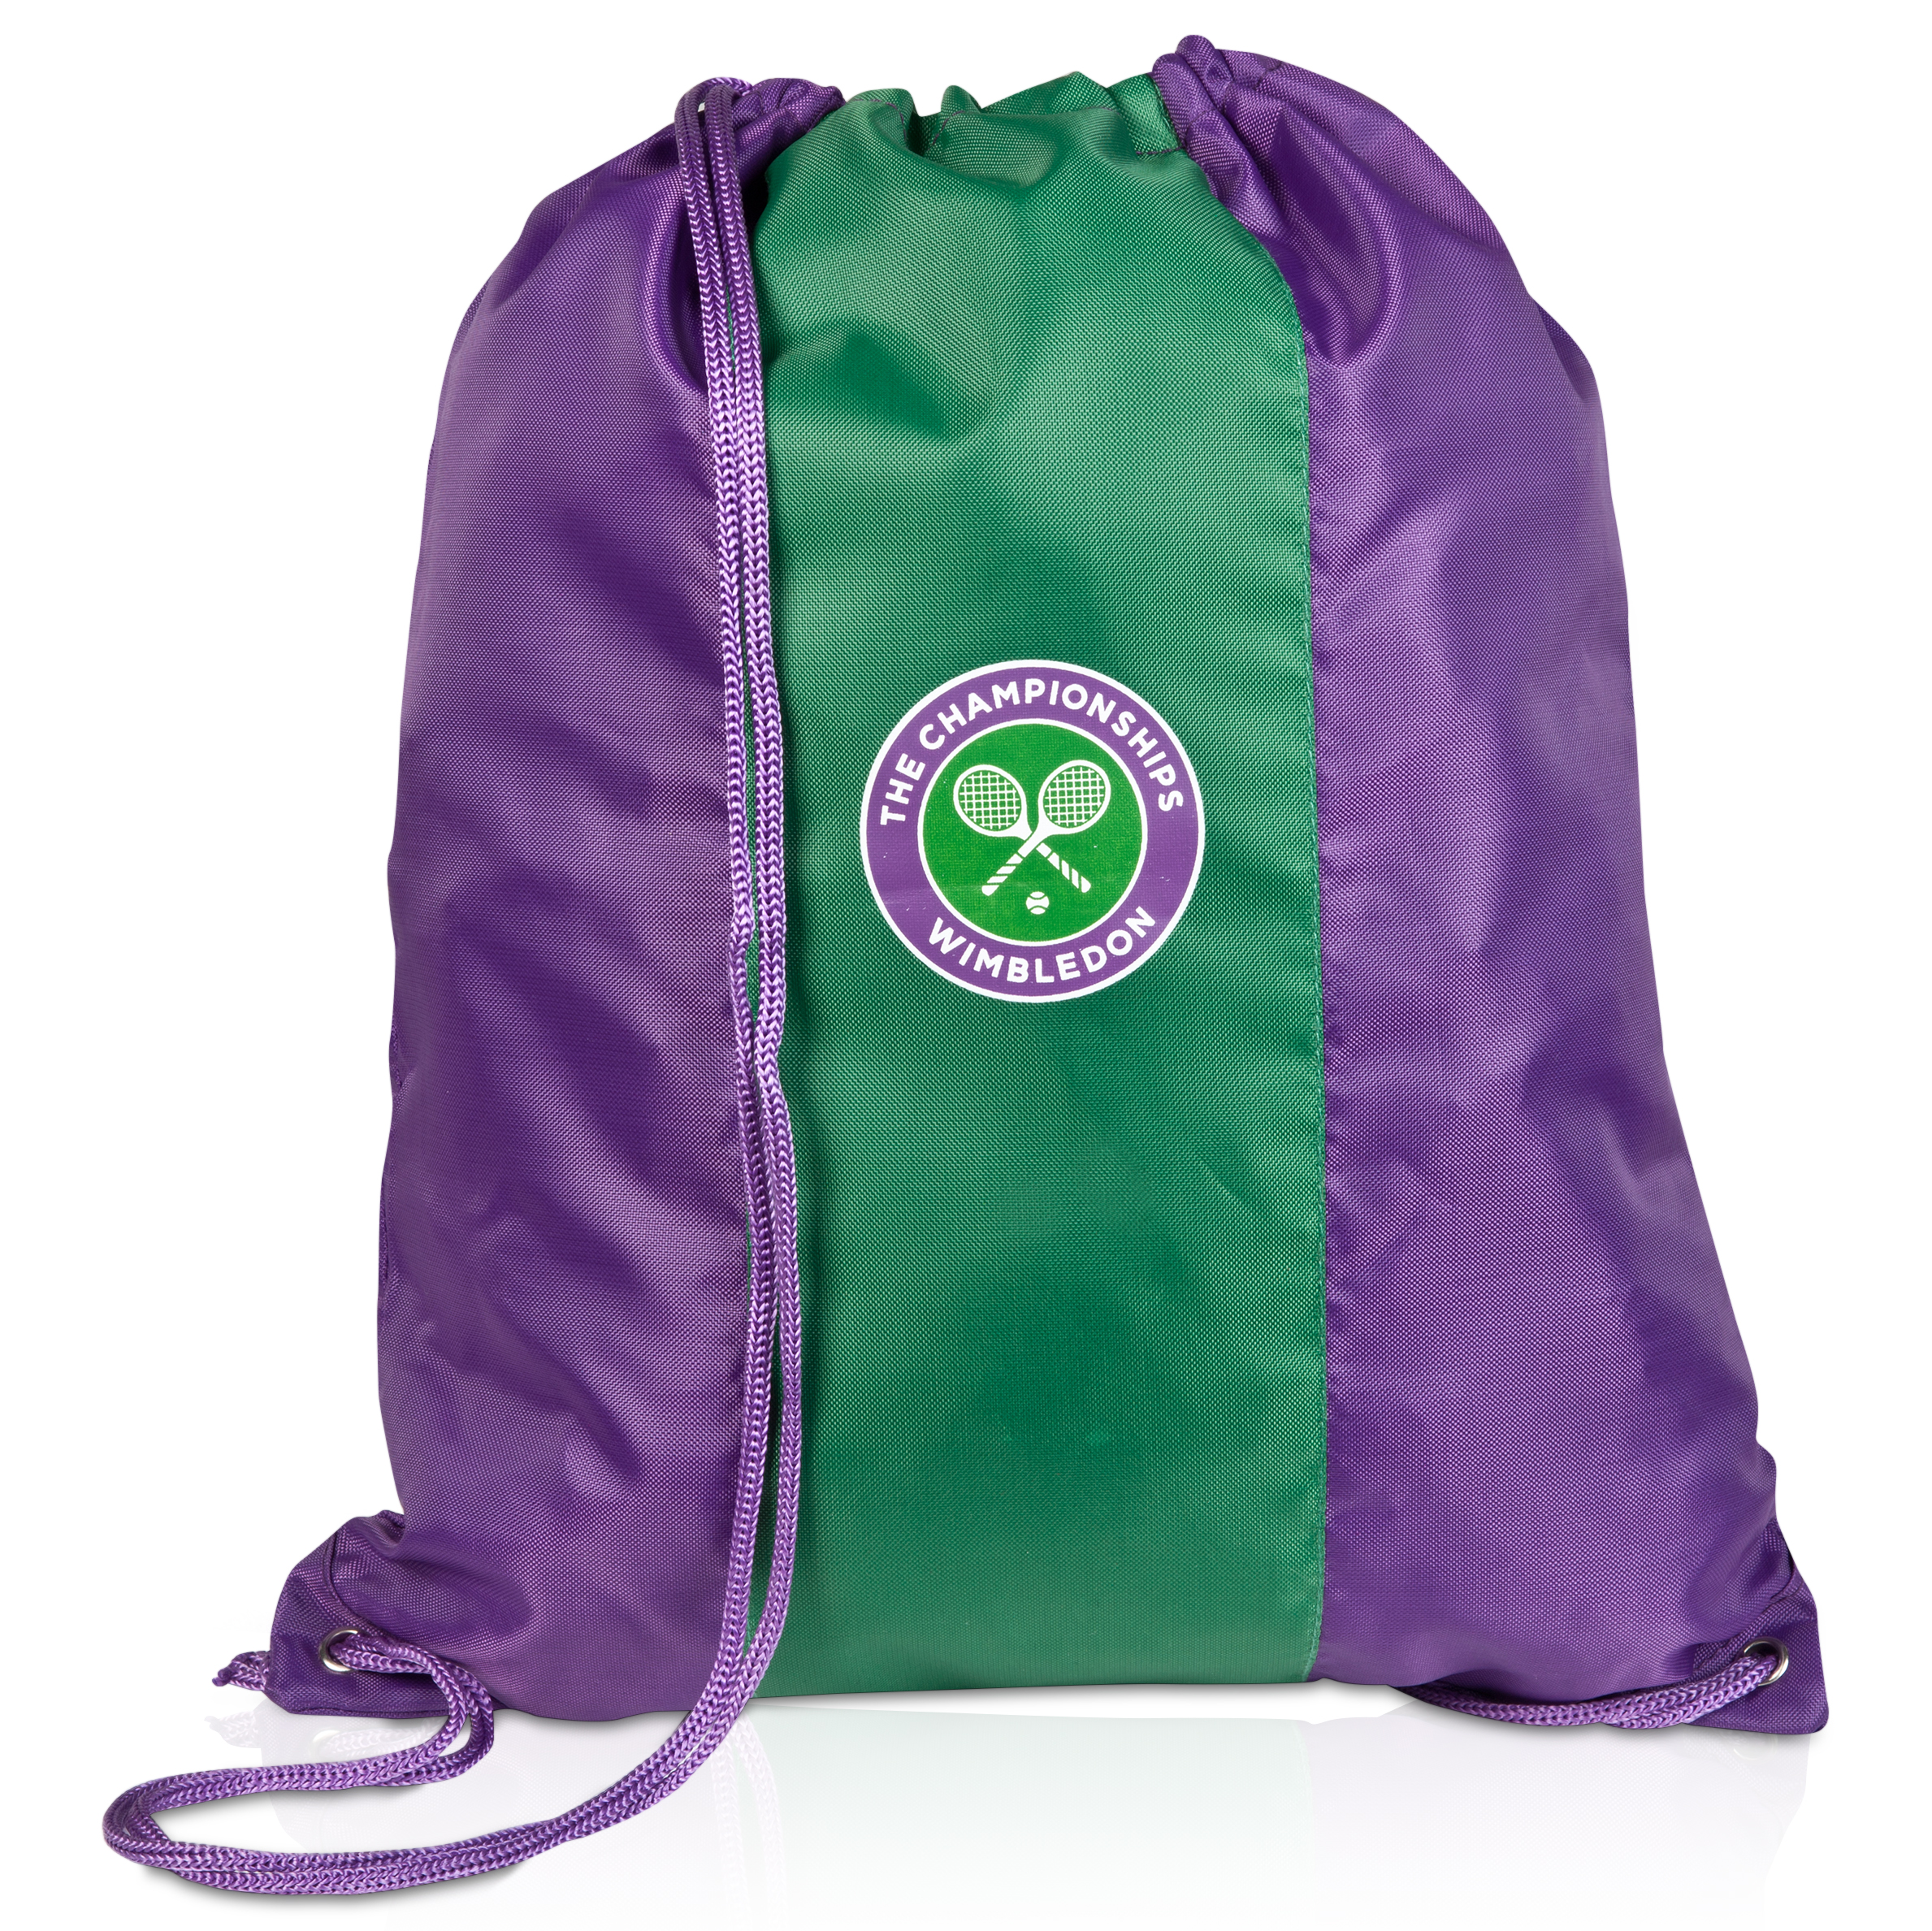 Wimbledon Draw String Bag Purple